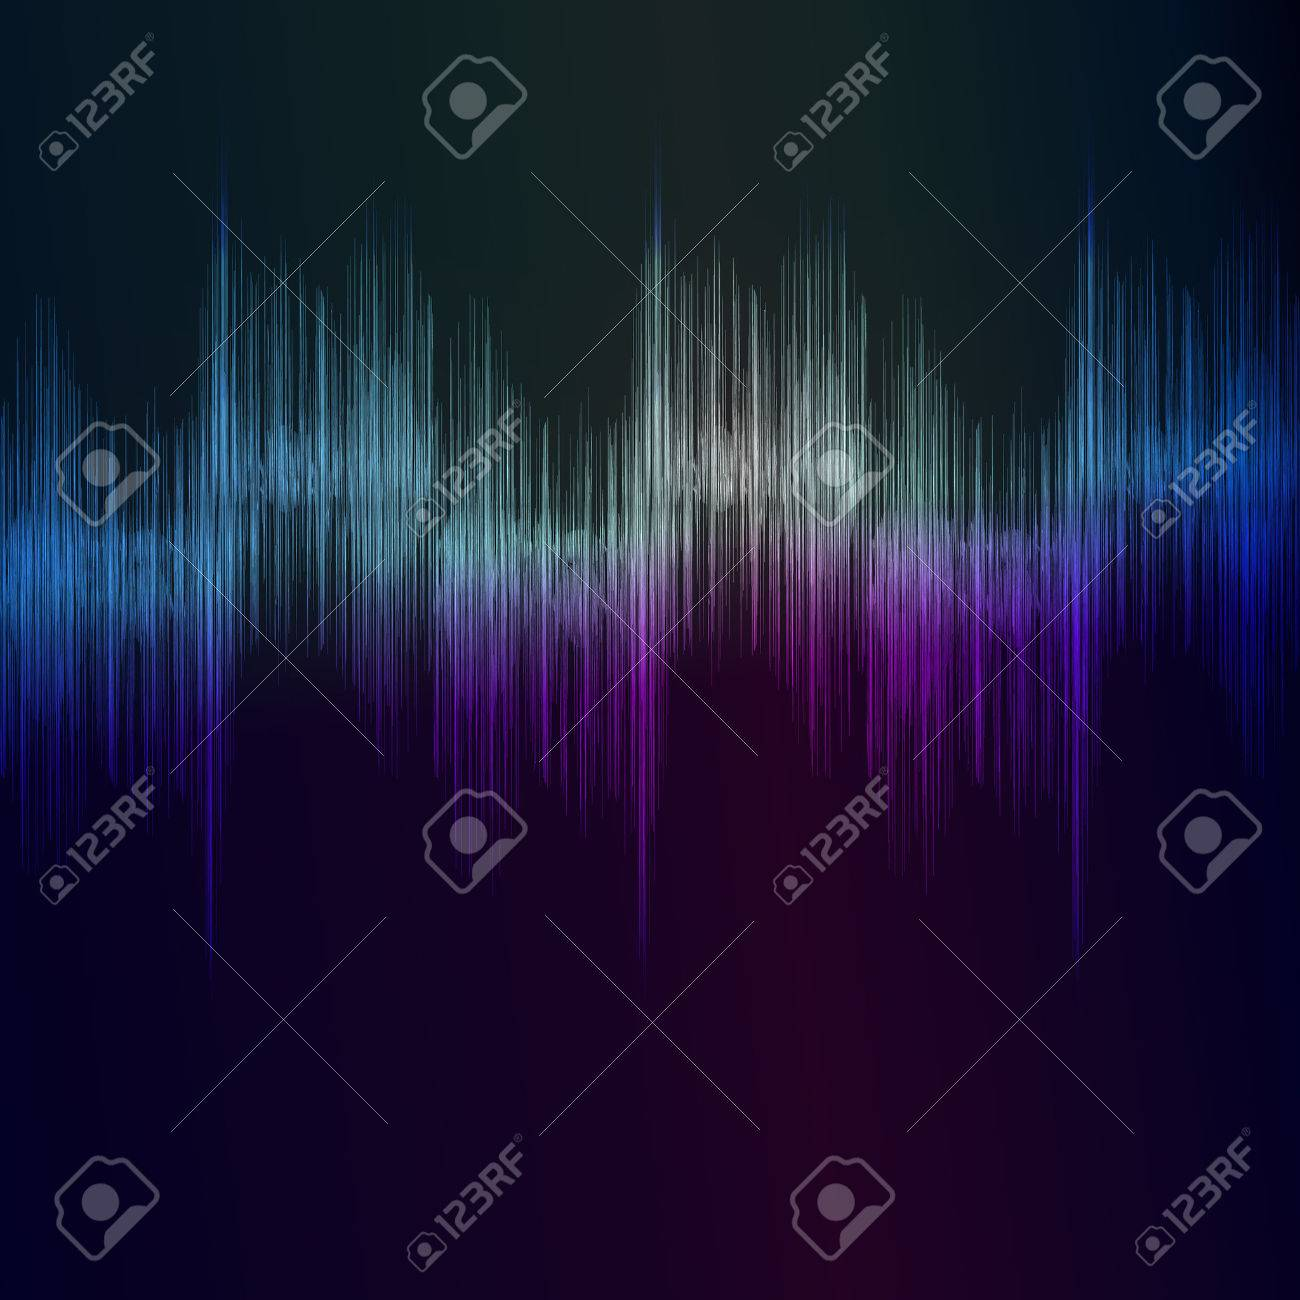 Eps Sound Equalizer Rhythm Music Beats Stock Vector - 7279378